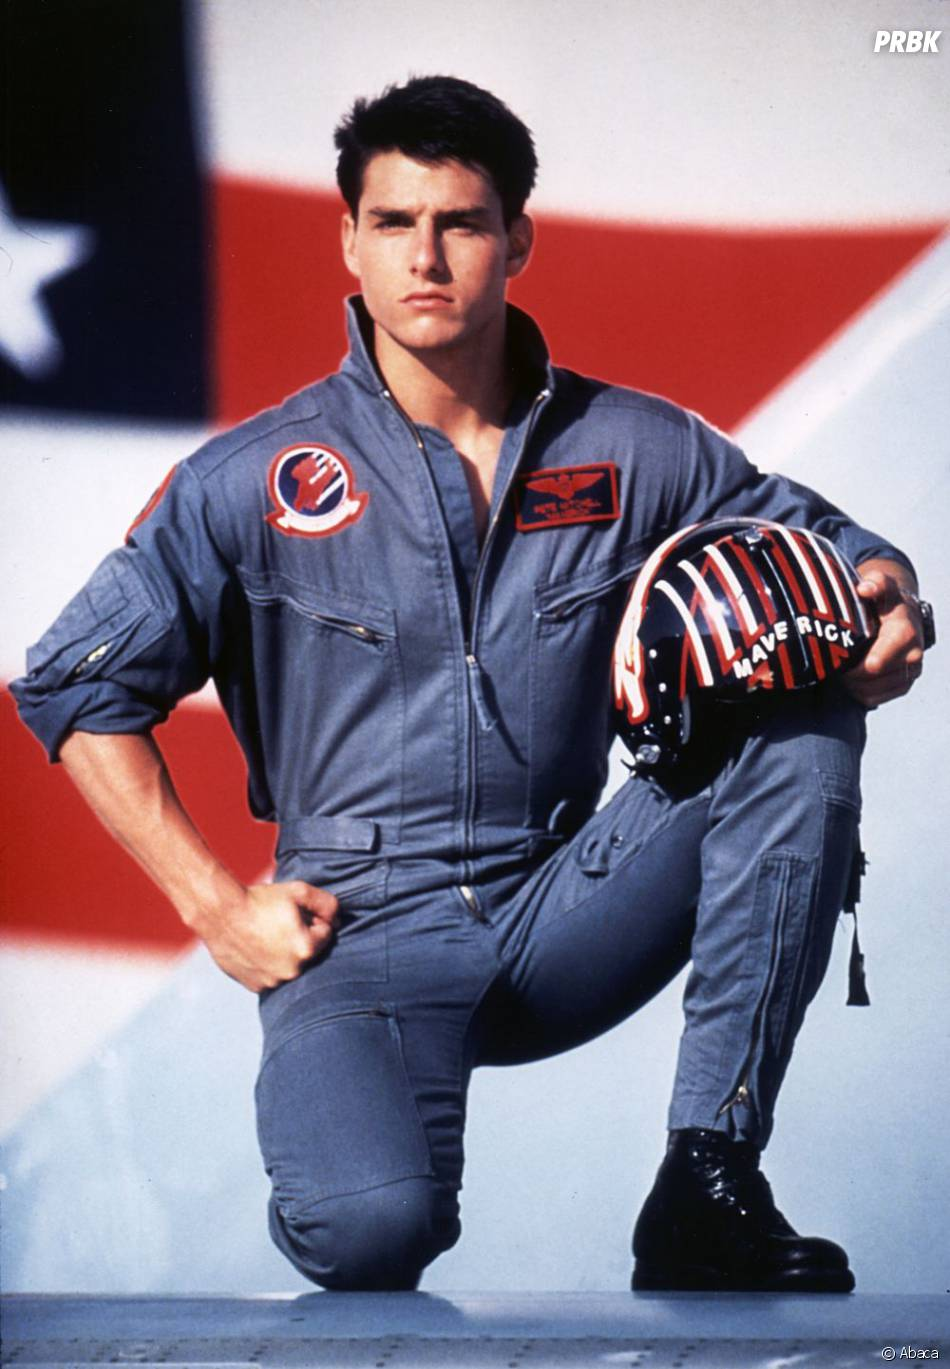 gr ce top gun tony scott a fait de tom cruise une star. Black Bedroom Furniture Sets. Home Design Ideas